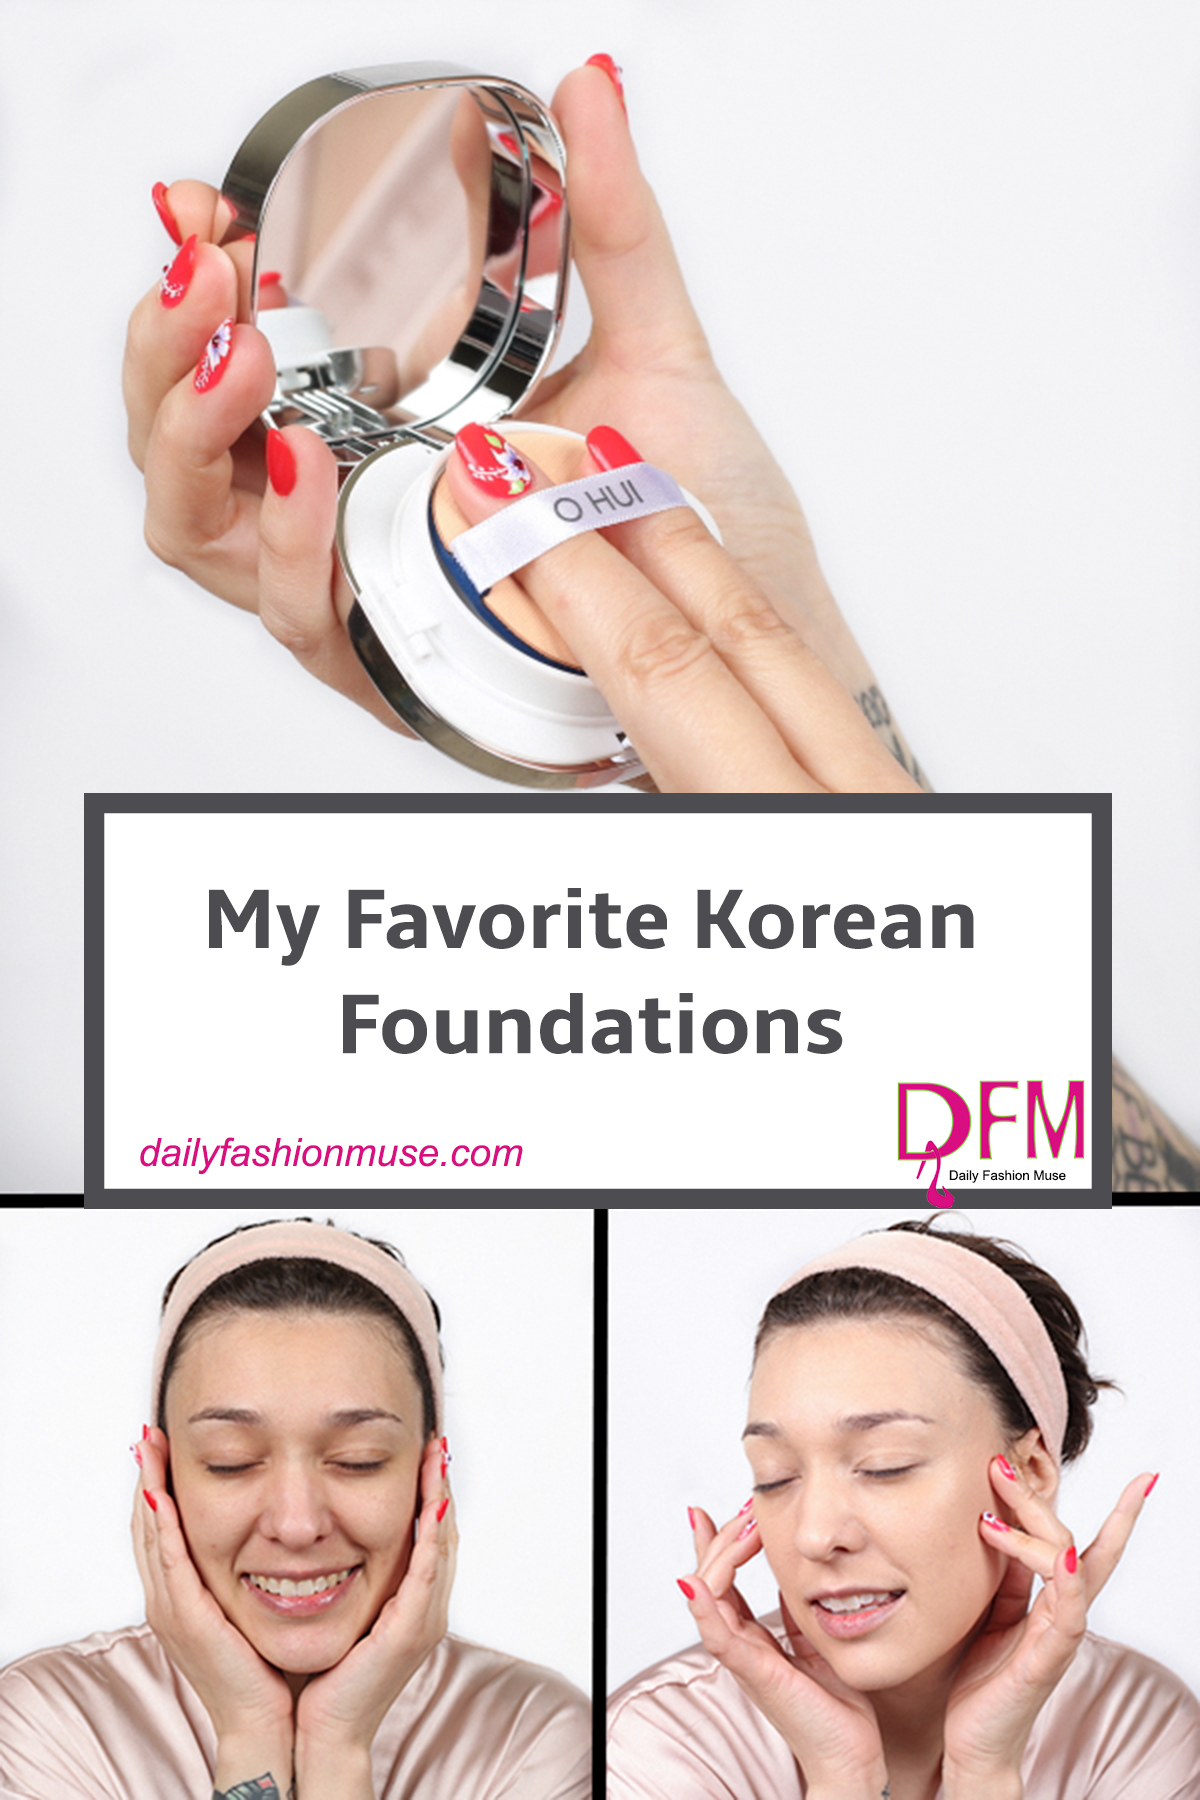 The Korean beauty industry is booming and for good reason. Korea has been leading the charge in new technology for skincare. Click to read about 2 of my favorite Korean Foundations.